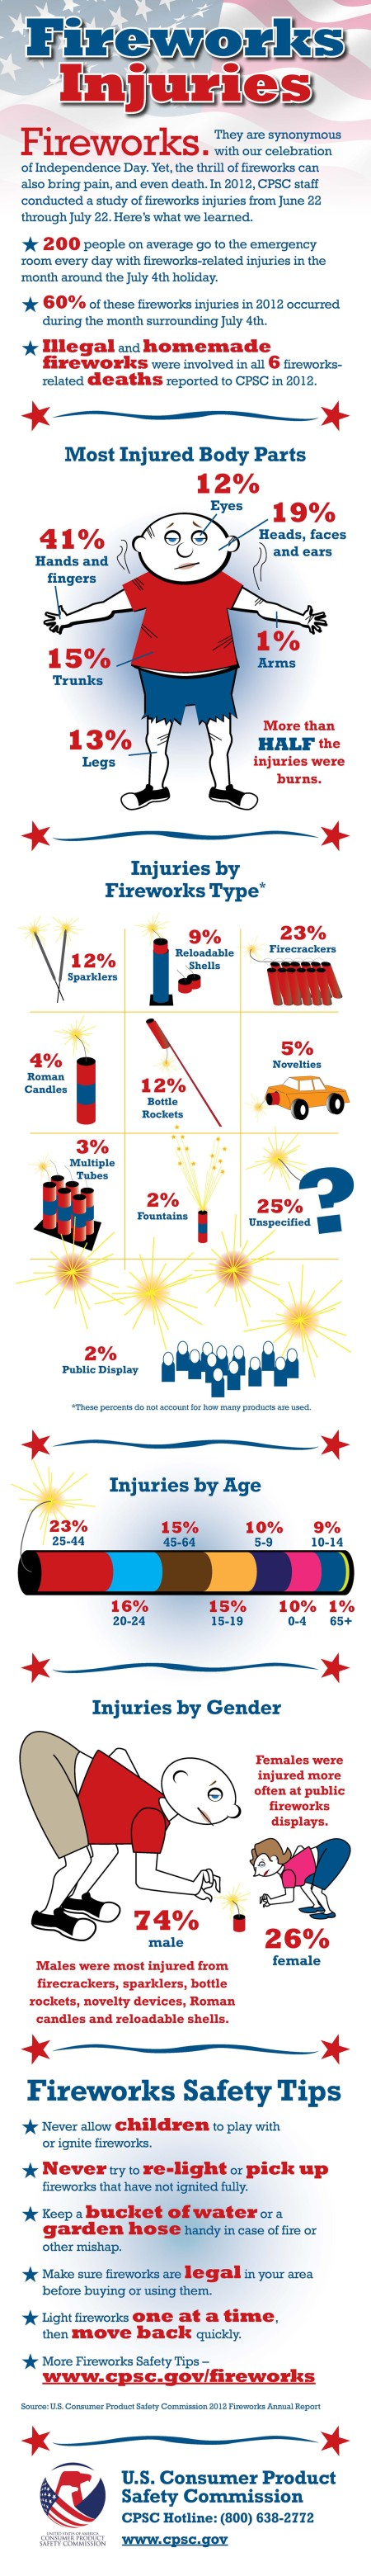 Infographic: Fireworks Injuries